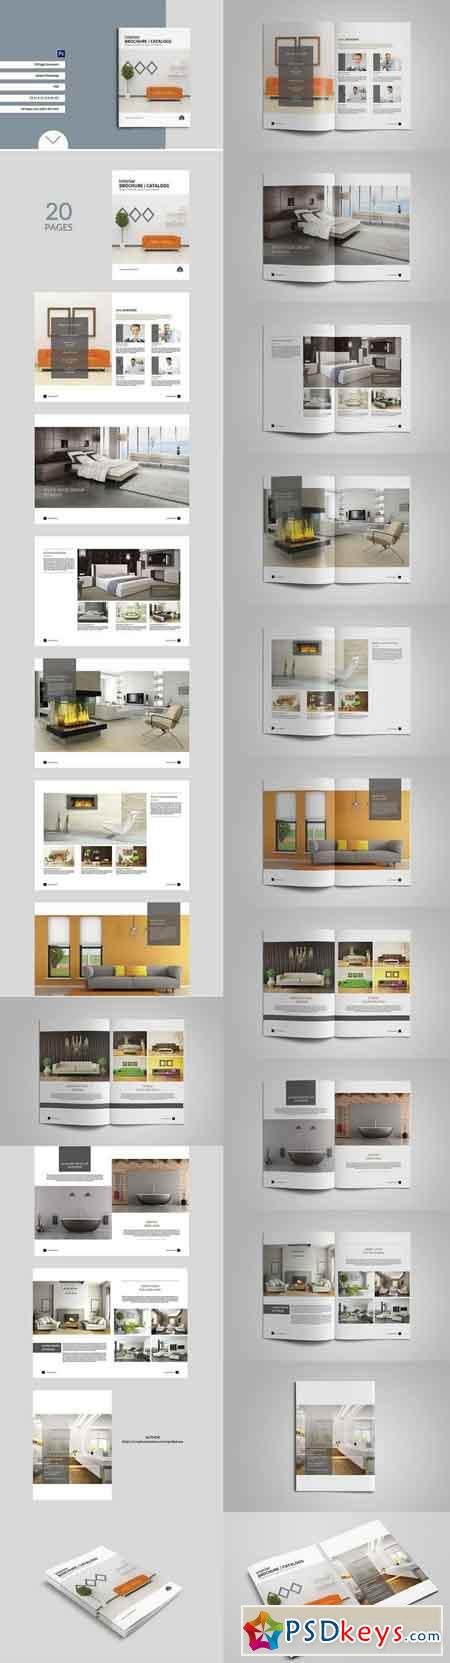 Interior Brochure Catalogs Template 1158057 Free